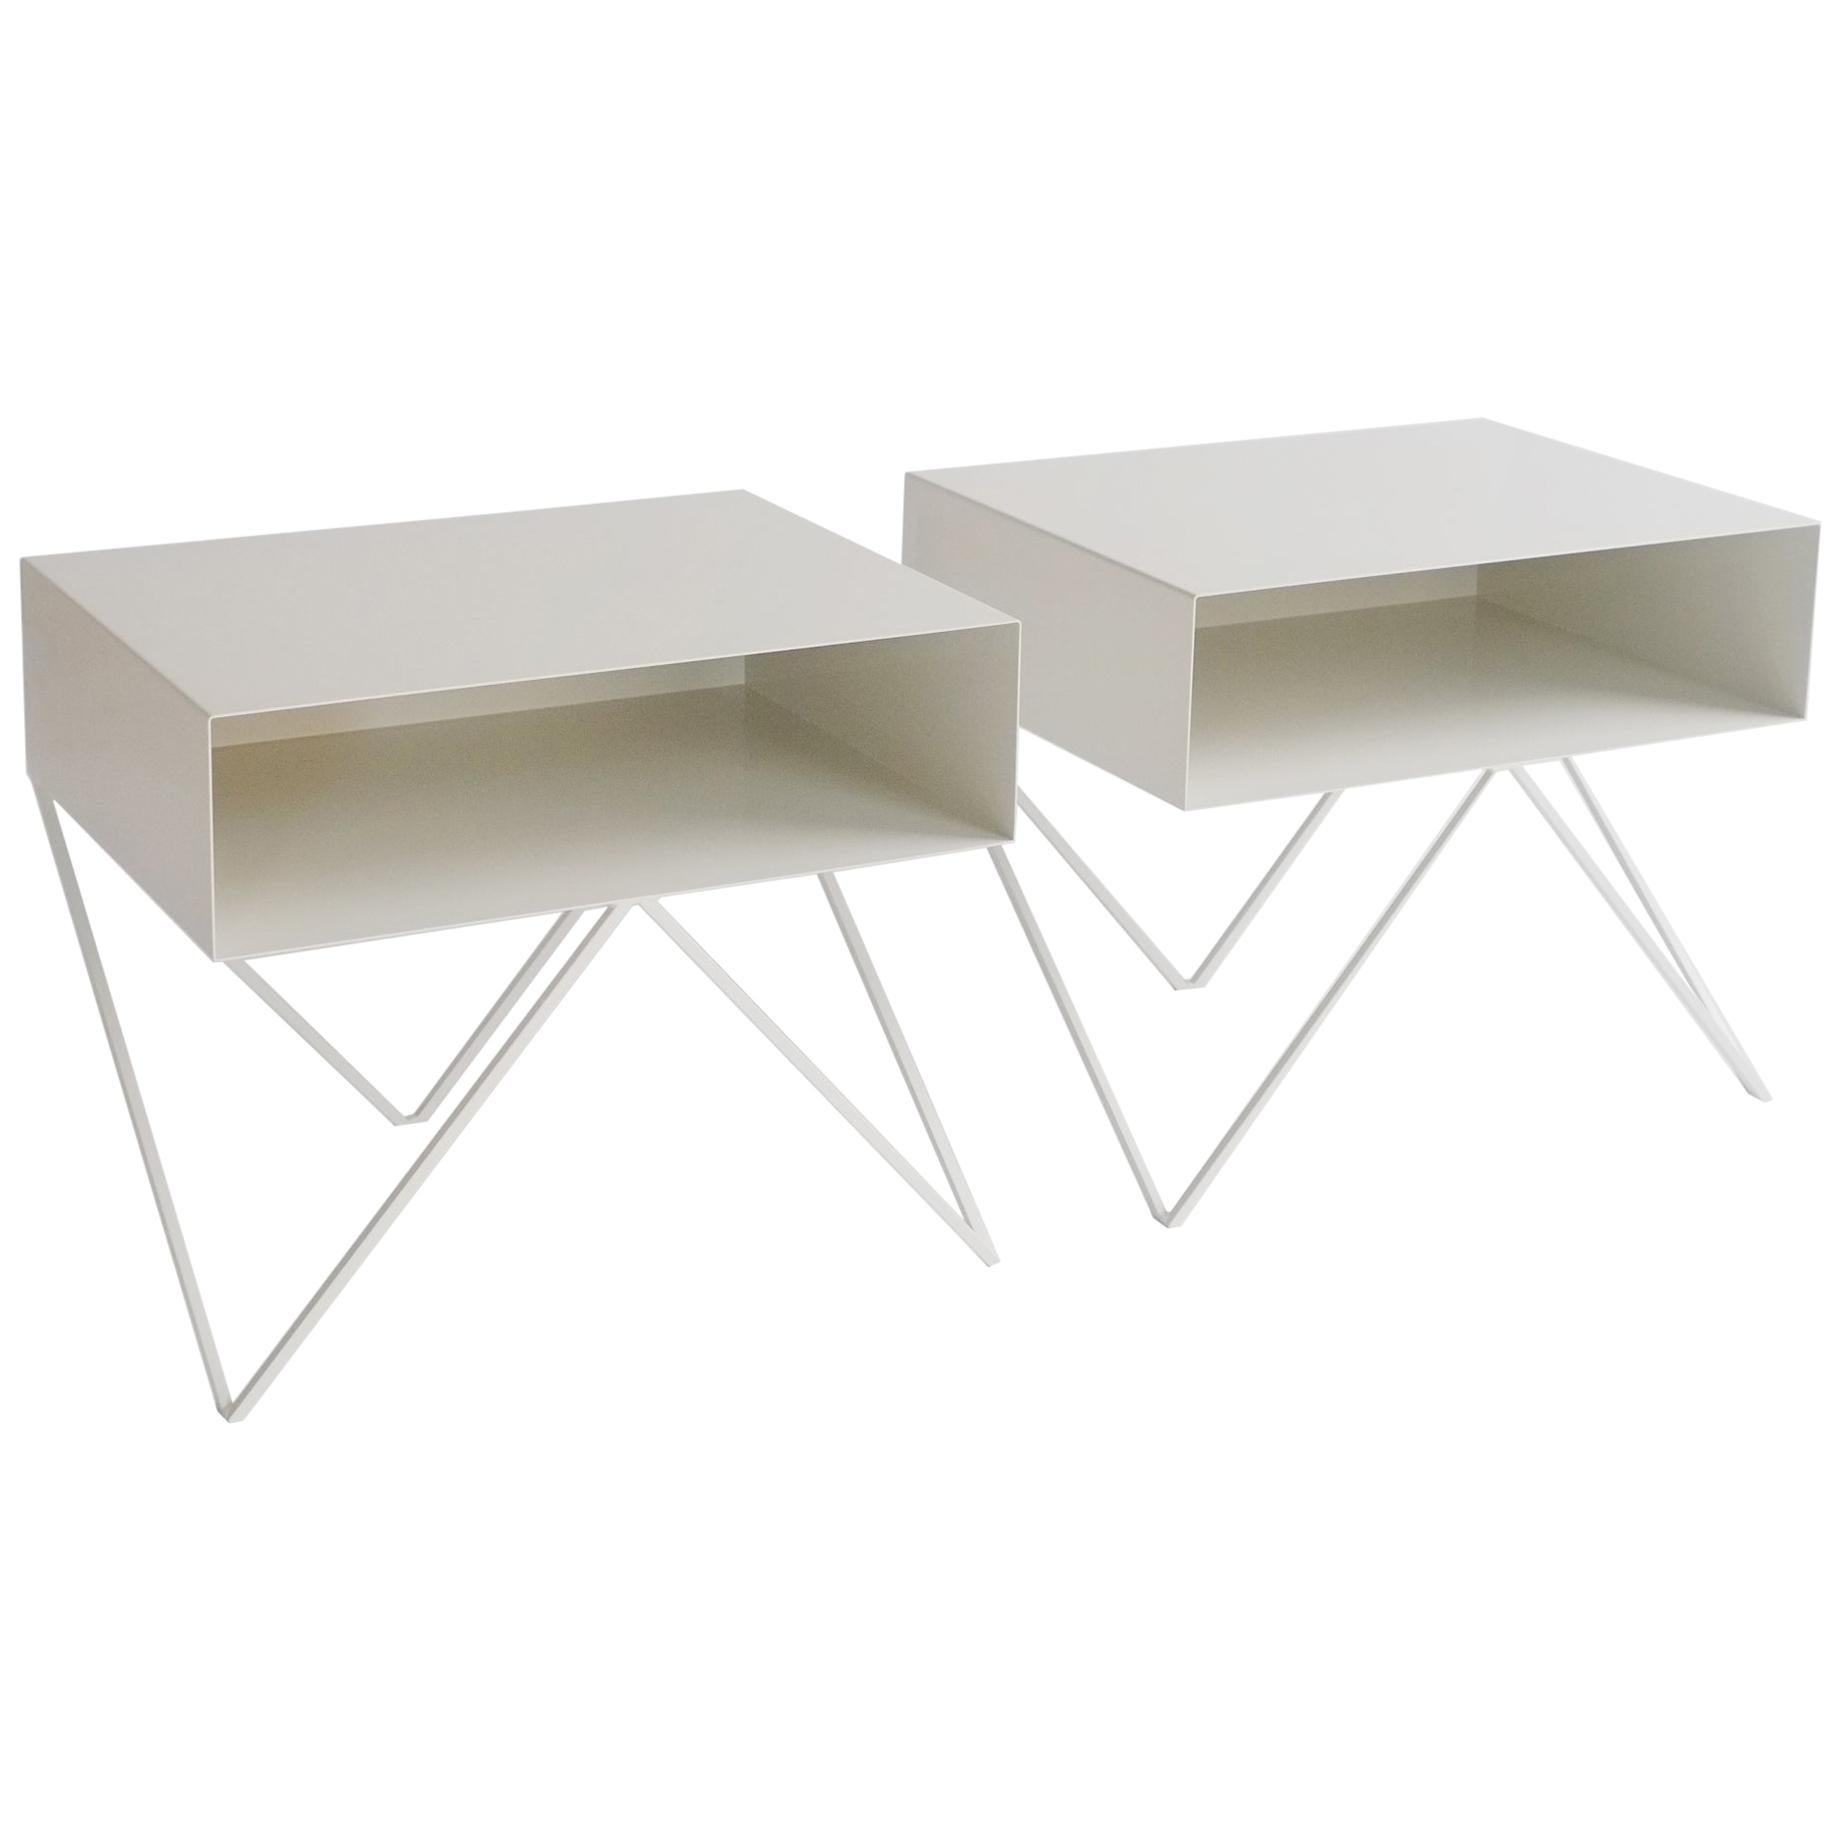 Large Pair of Paper White Powder-Coated Steel Robot Bedside Tables